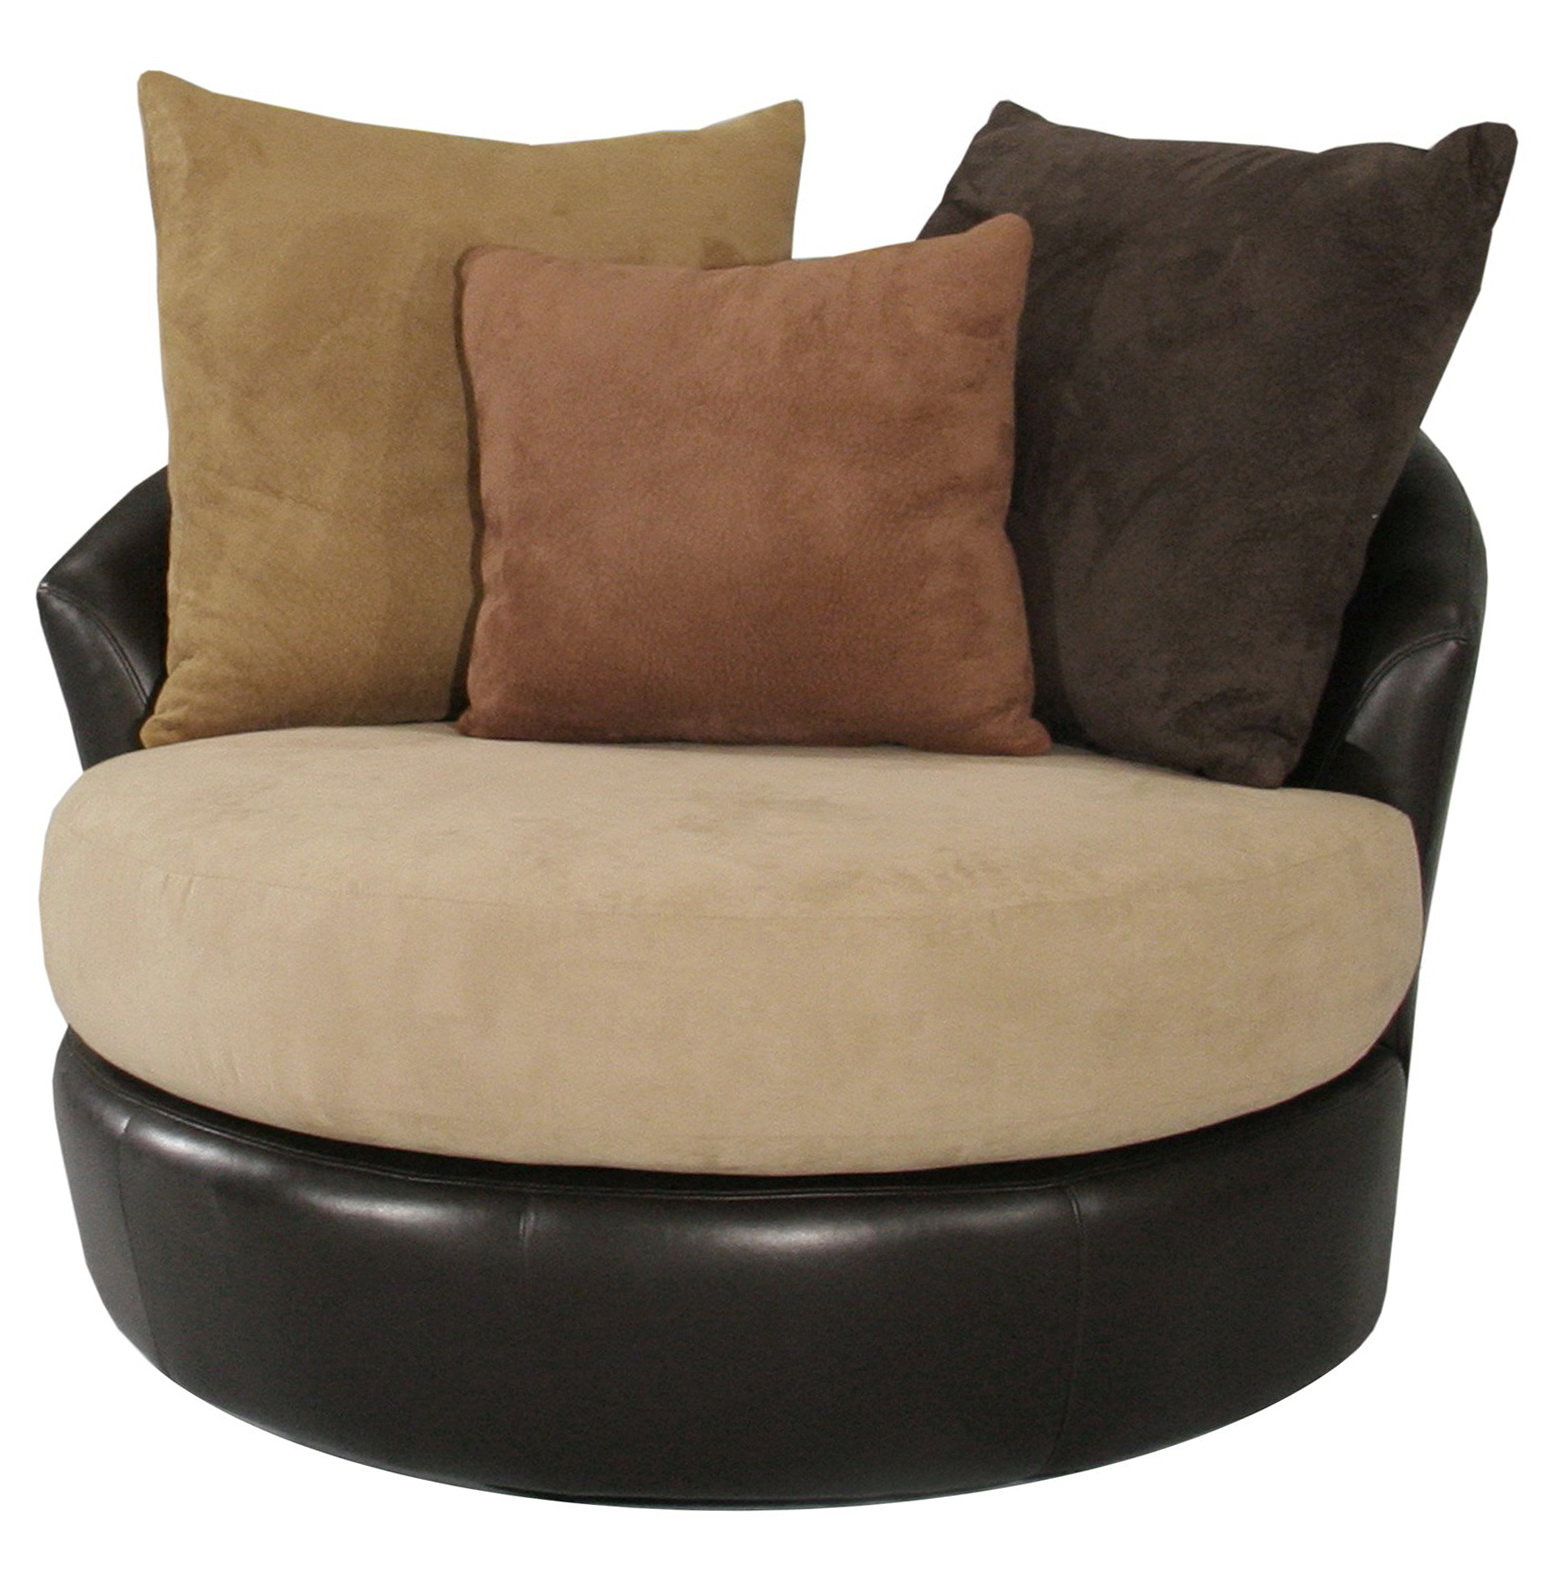 seater with ottoman furniture bazaar for plus chaise lounges lounge suite western perth sale fabric cologne australia